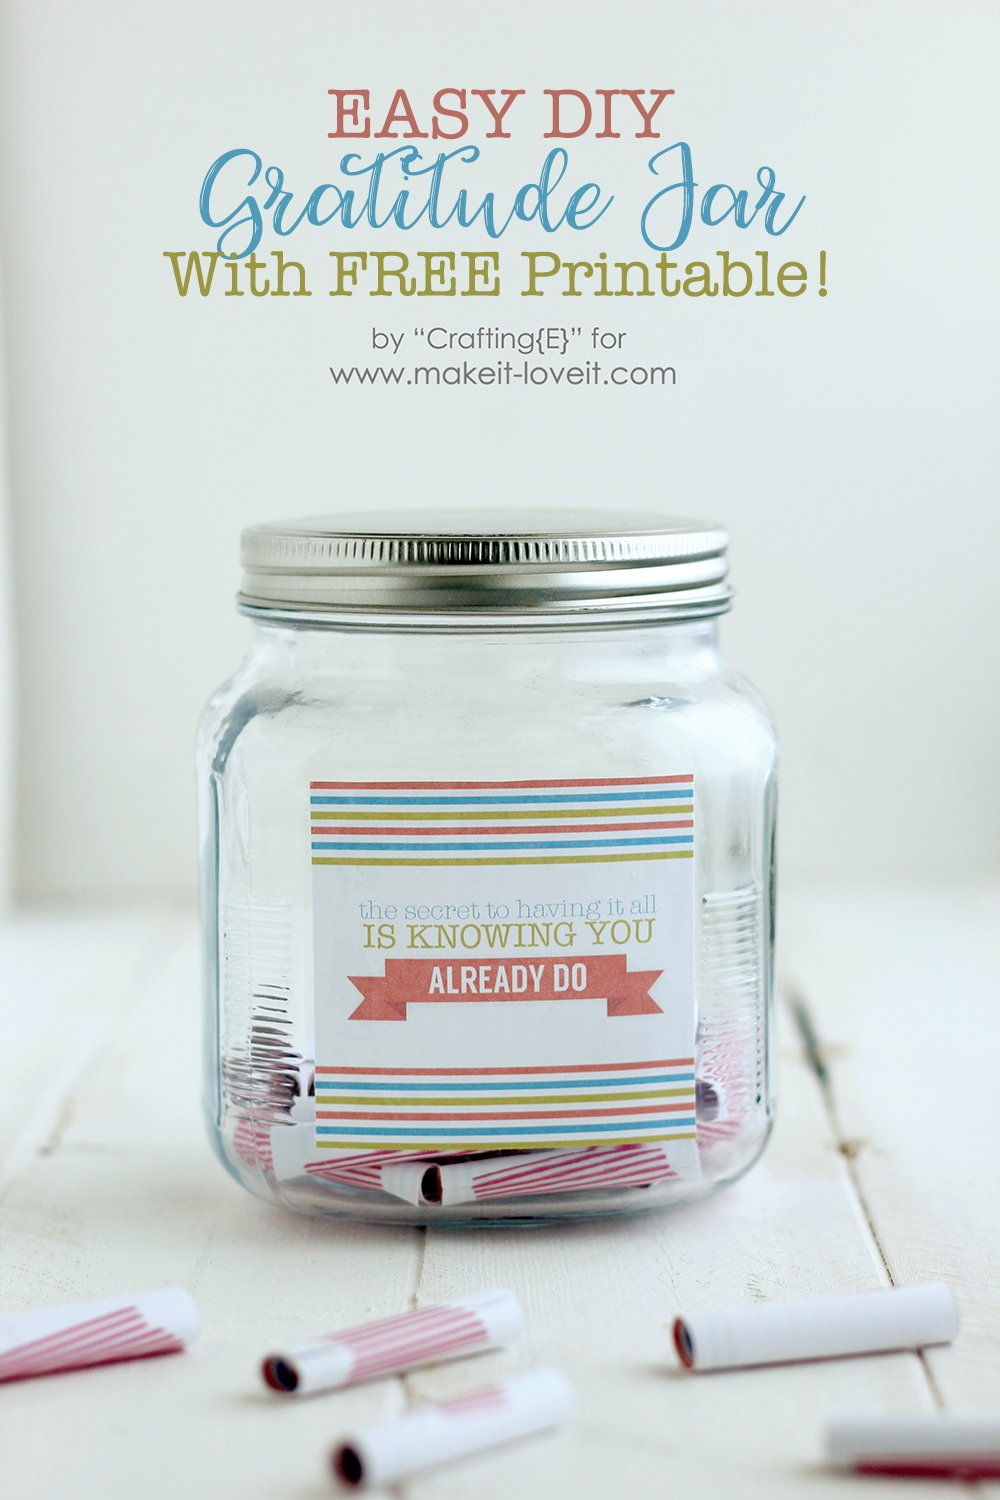 Easy diy gratiude jar with free printable